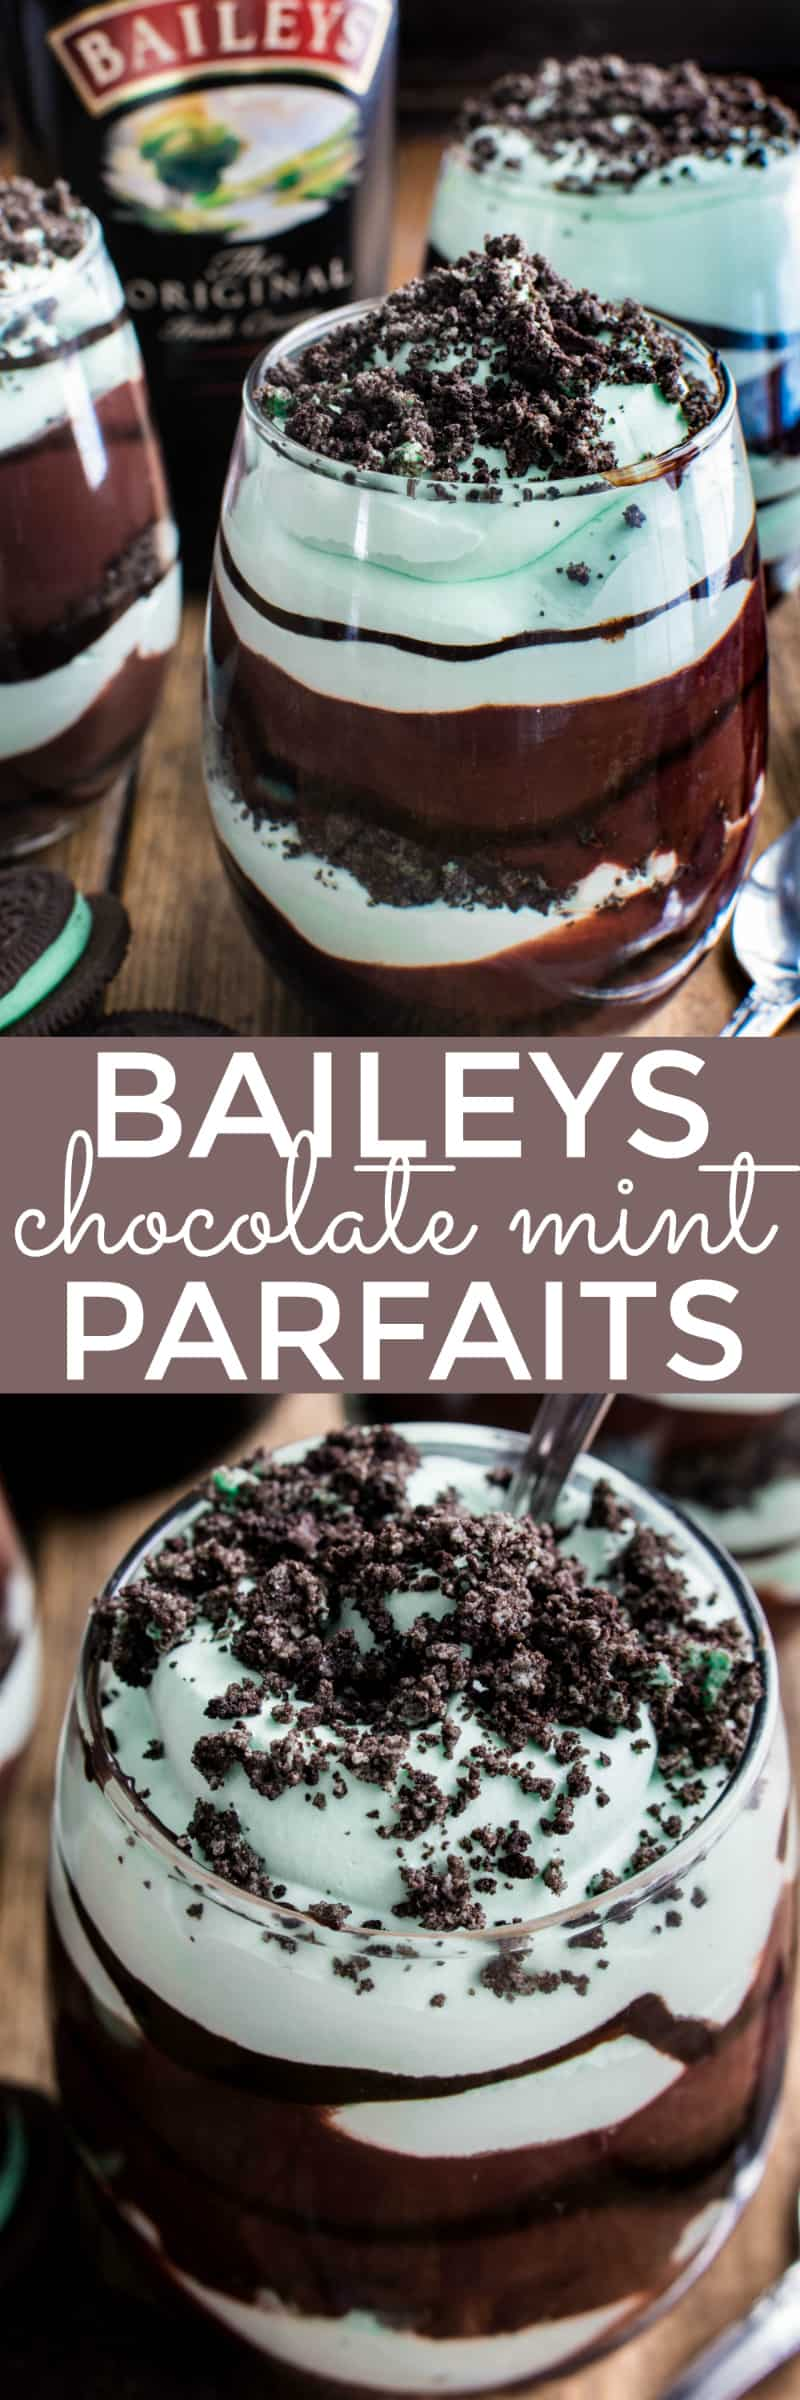 These Baileys Chocolate Mint Pudding Parfaits combine the classic flavors of chocolate, mint, and Baileys Irish Cream in one delicious no-bake dessert.